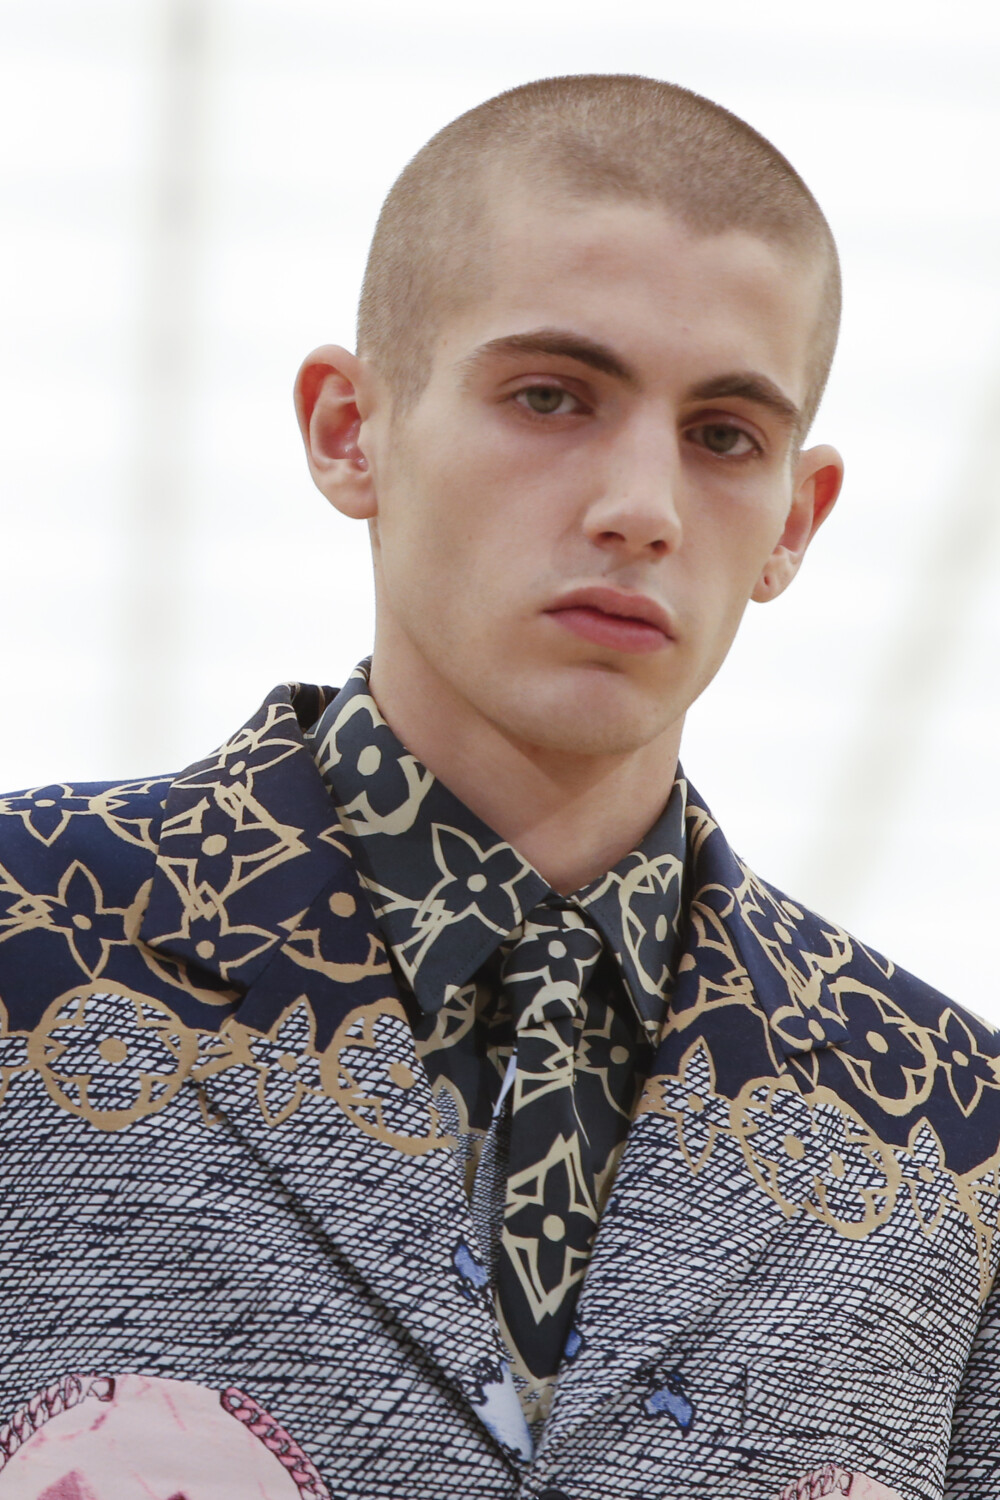 Louis Vuitton beauty Men Fall Winter 2021 2022 Paris